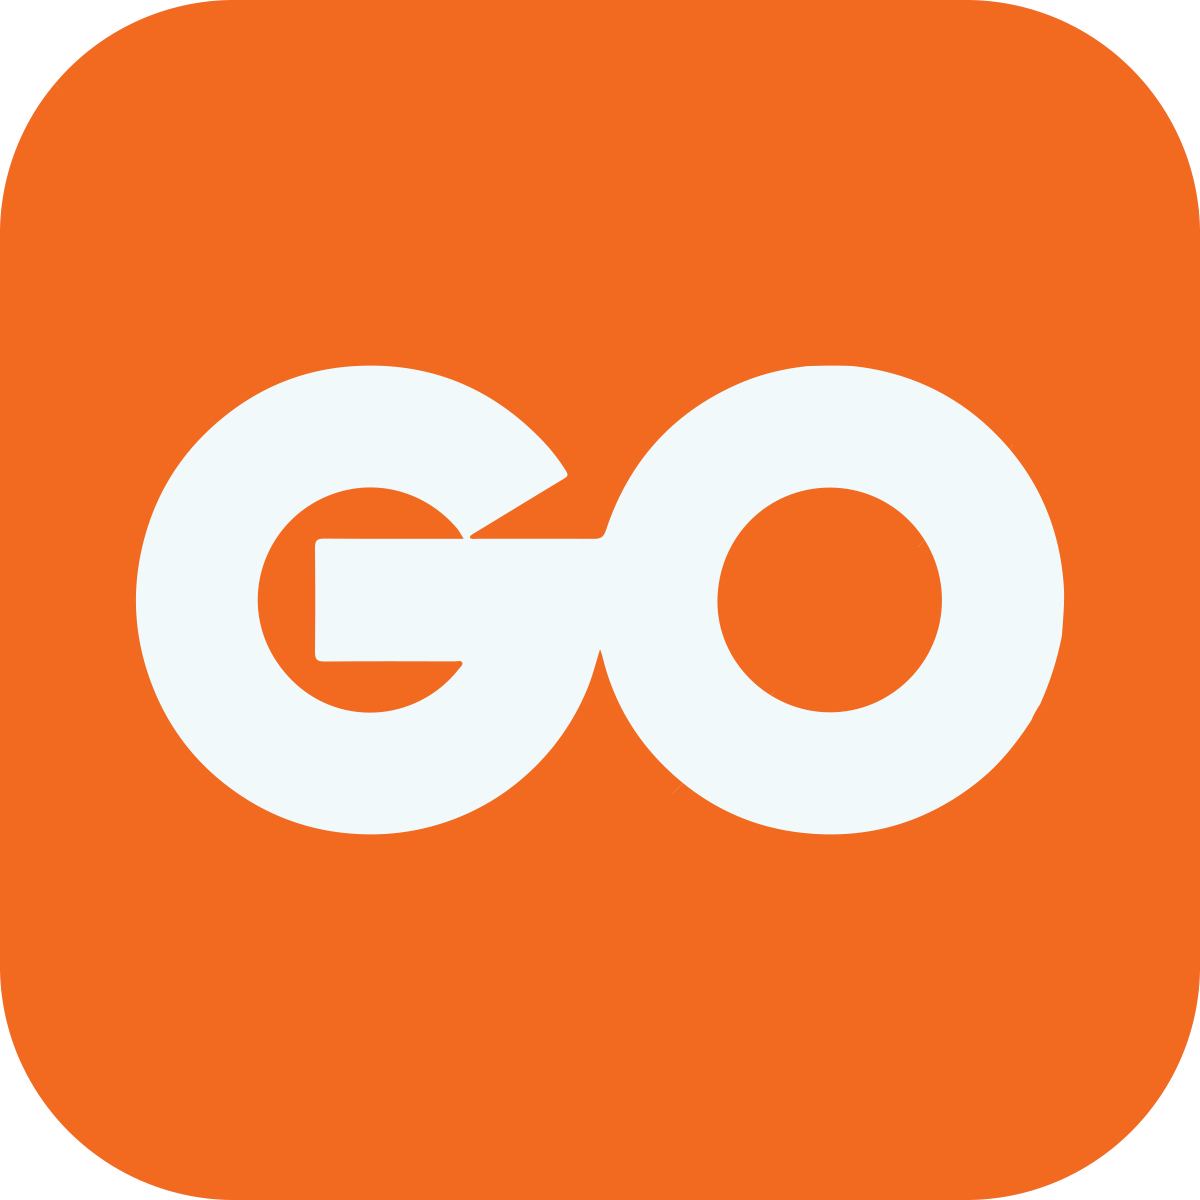 The GO app icon